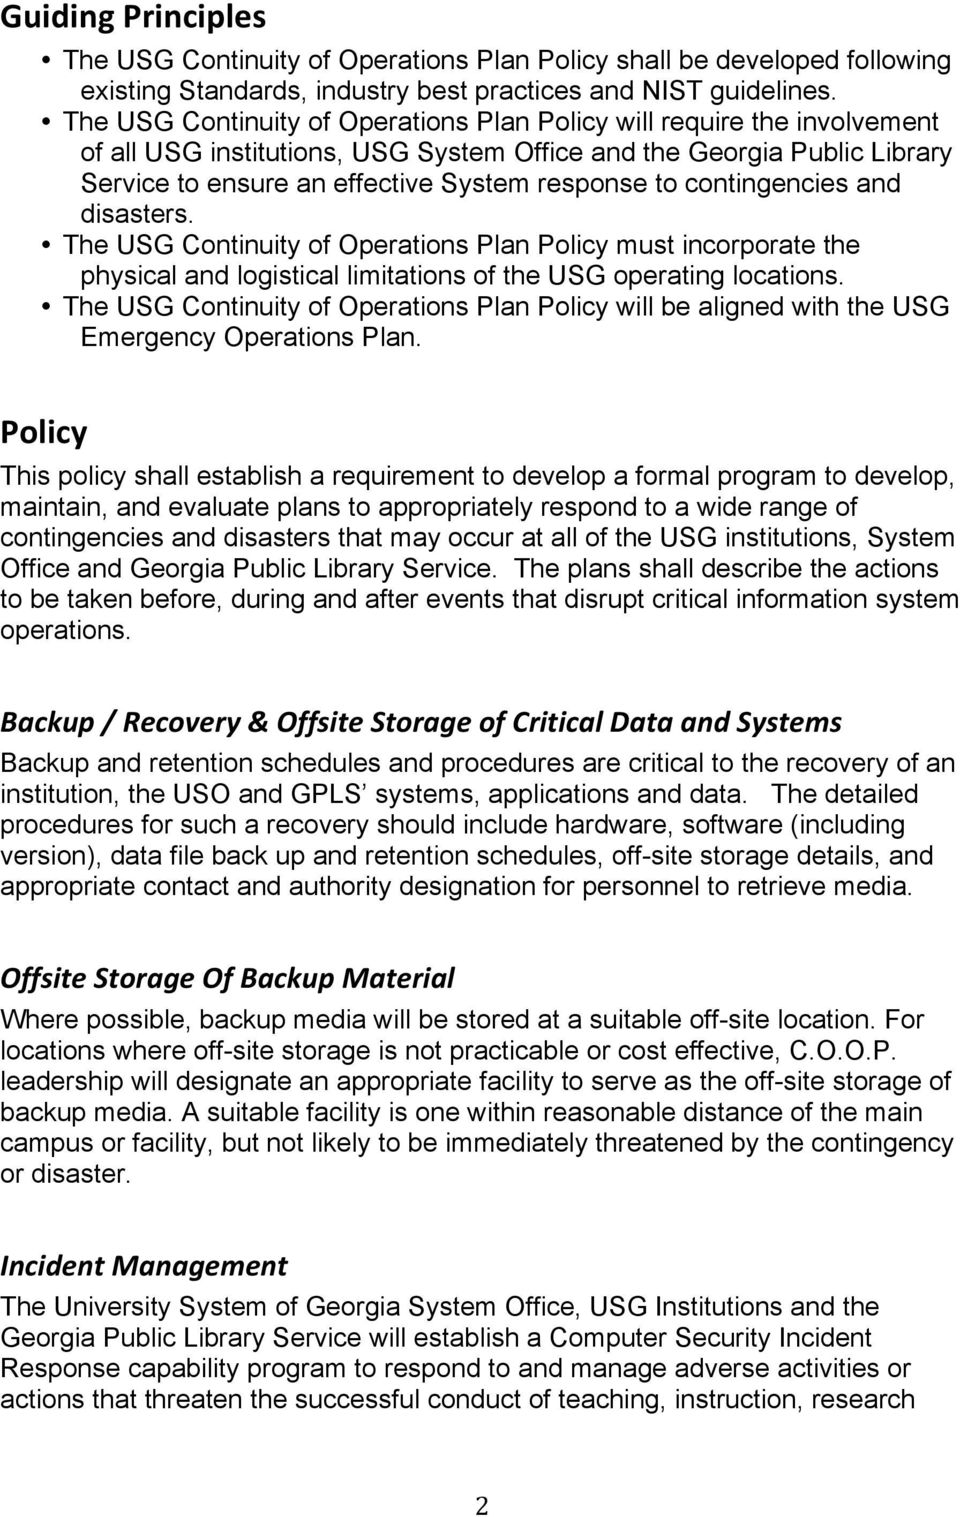 contingencies and disasters. The USG Continuity of Operations Plan Policy must incorporate the physical and logistical limitations of the USG operating locations.